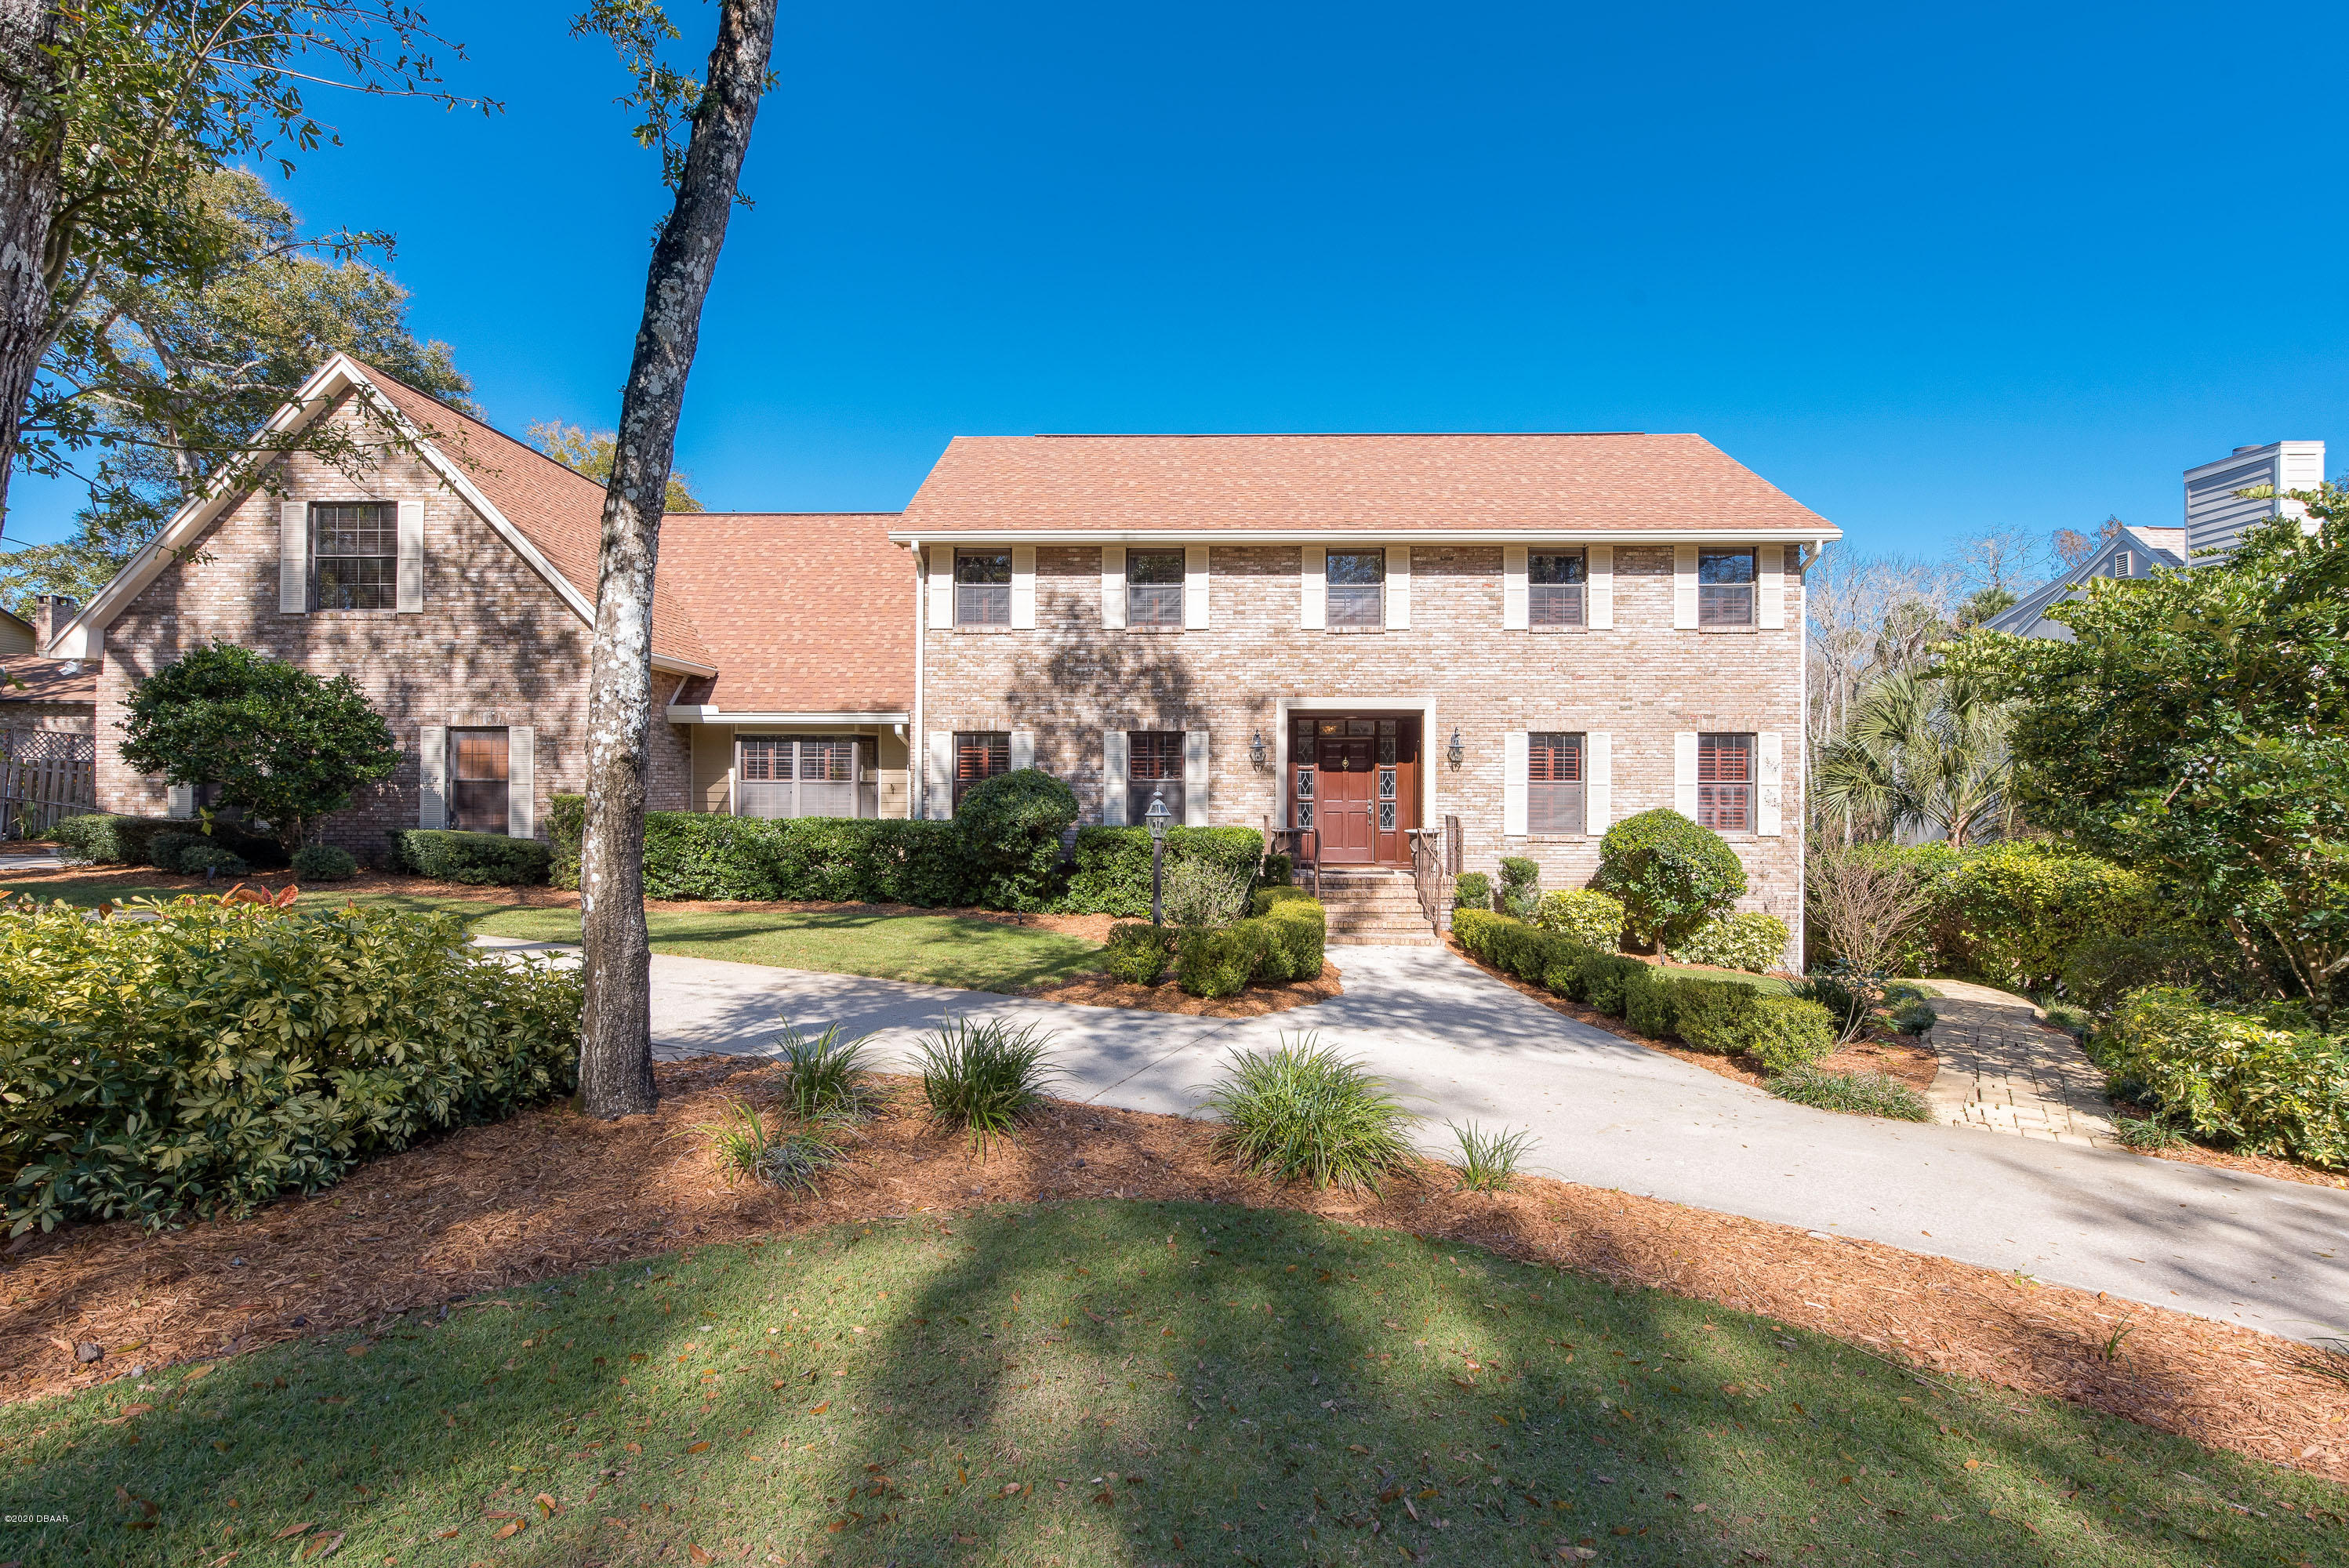 Photo of 5 Circle Oaks Trail, Ormond Beach, FL 32174